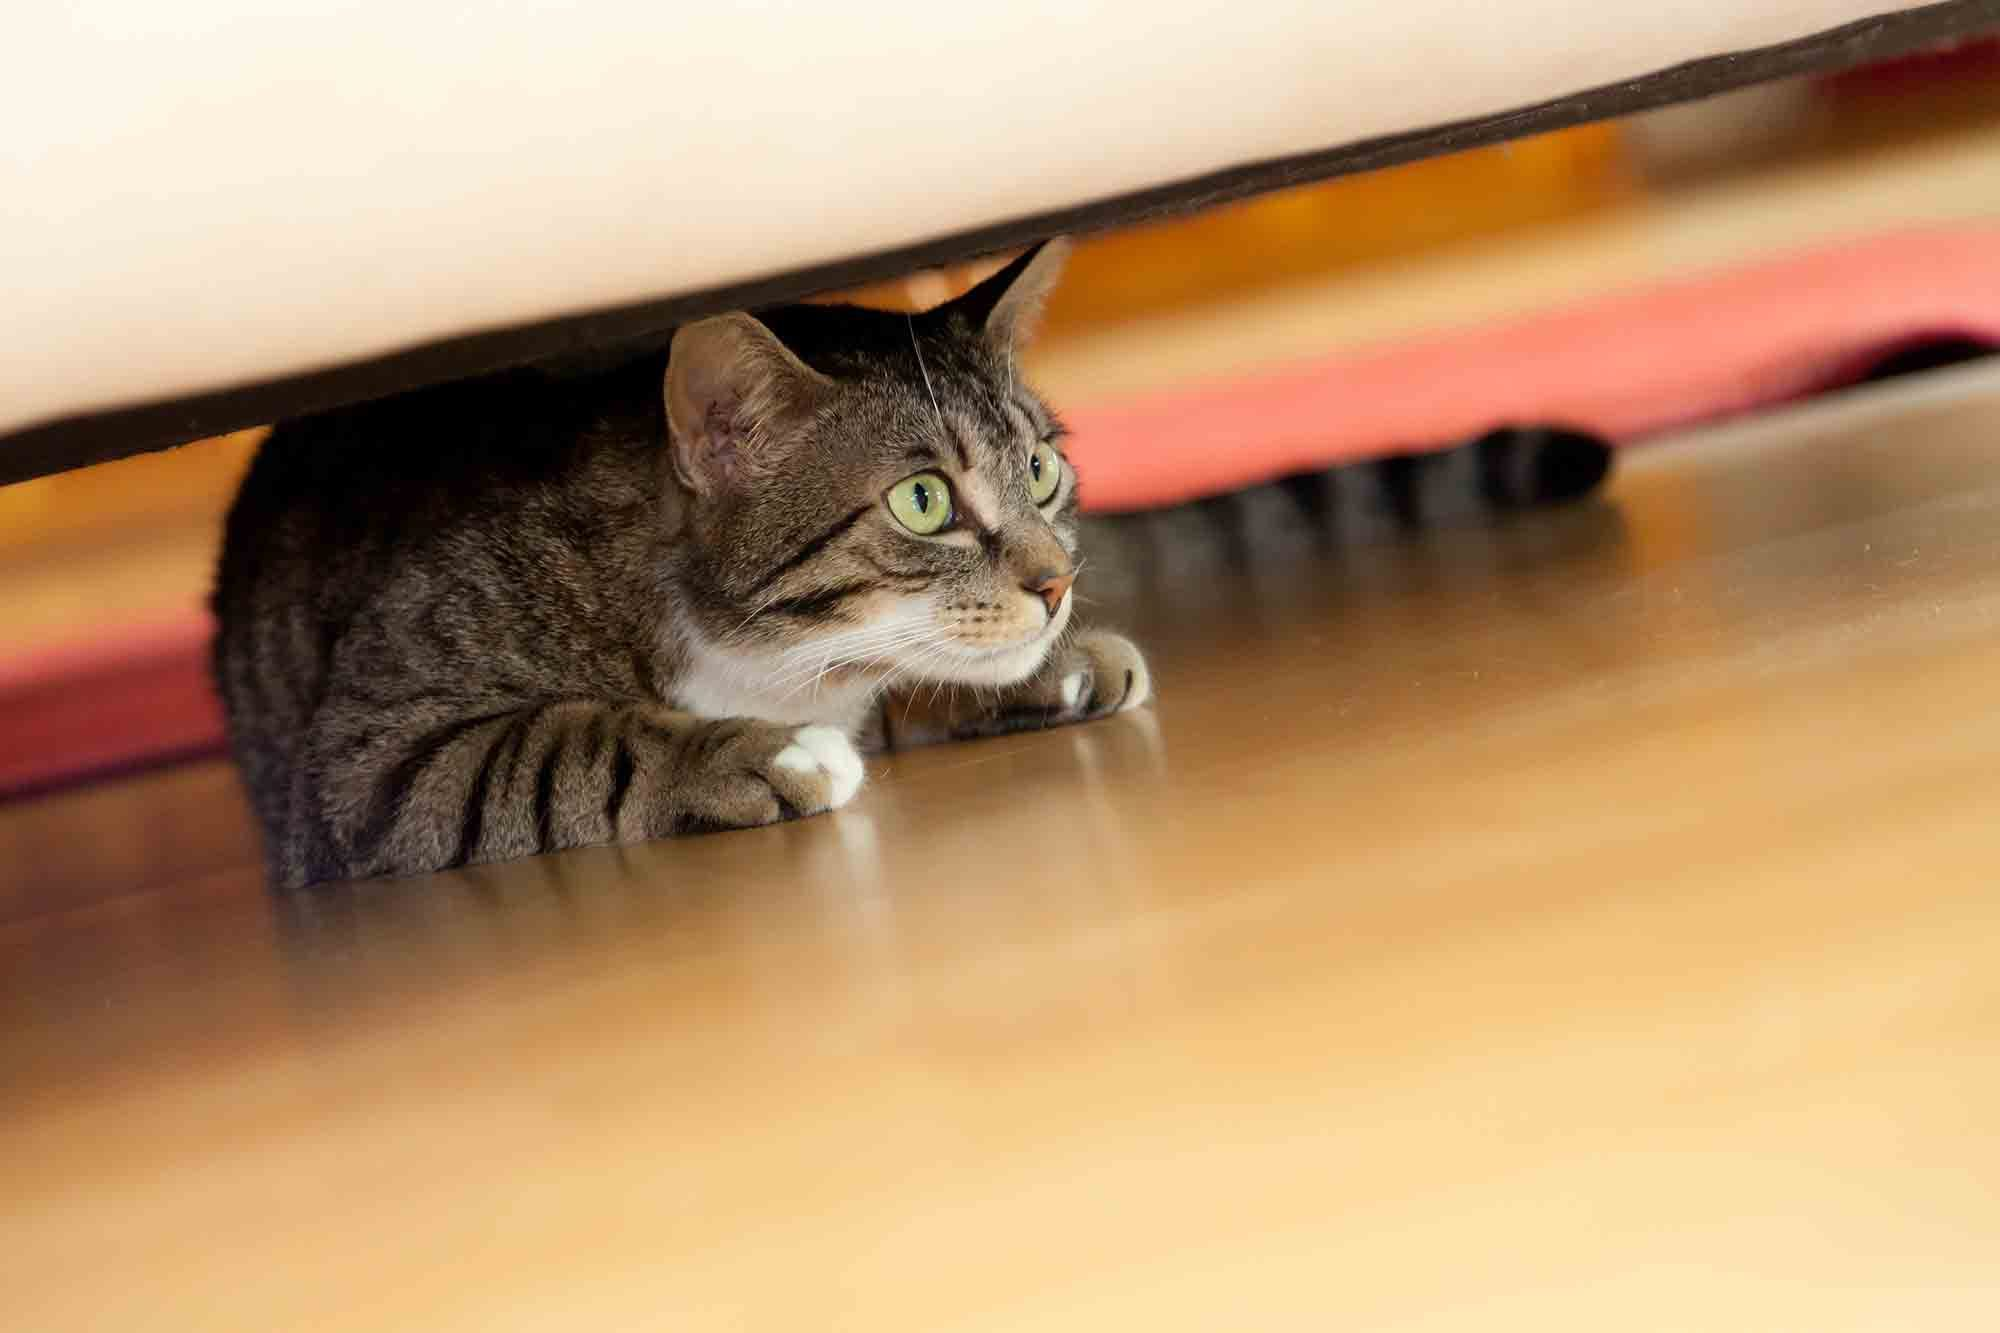 Striped cat under a couch